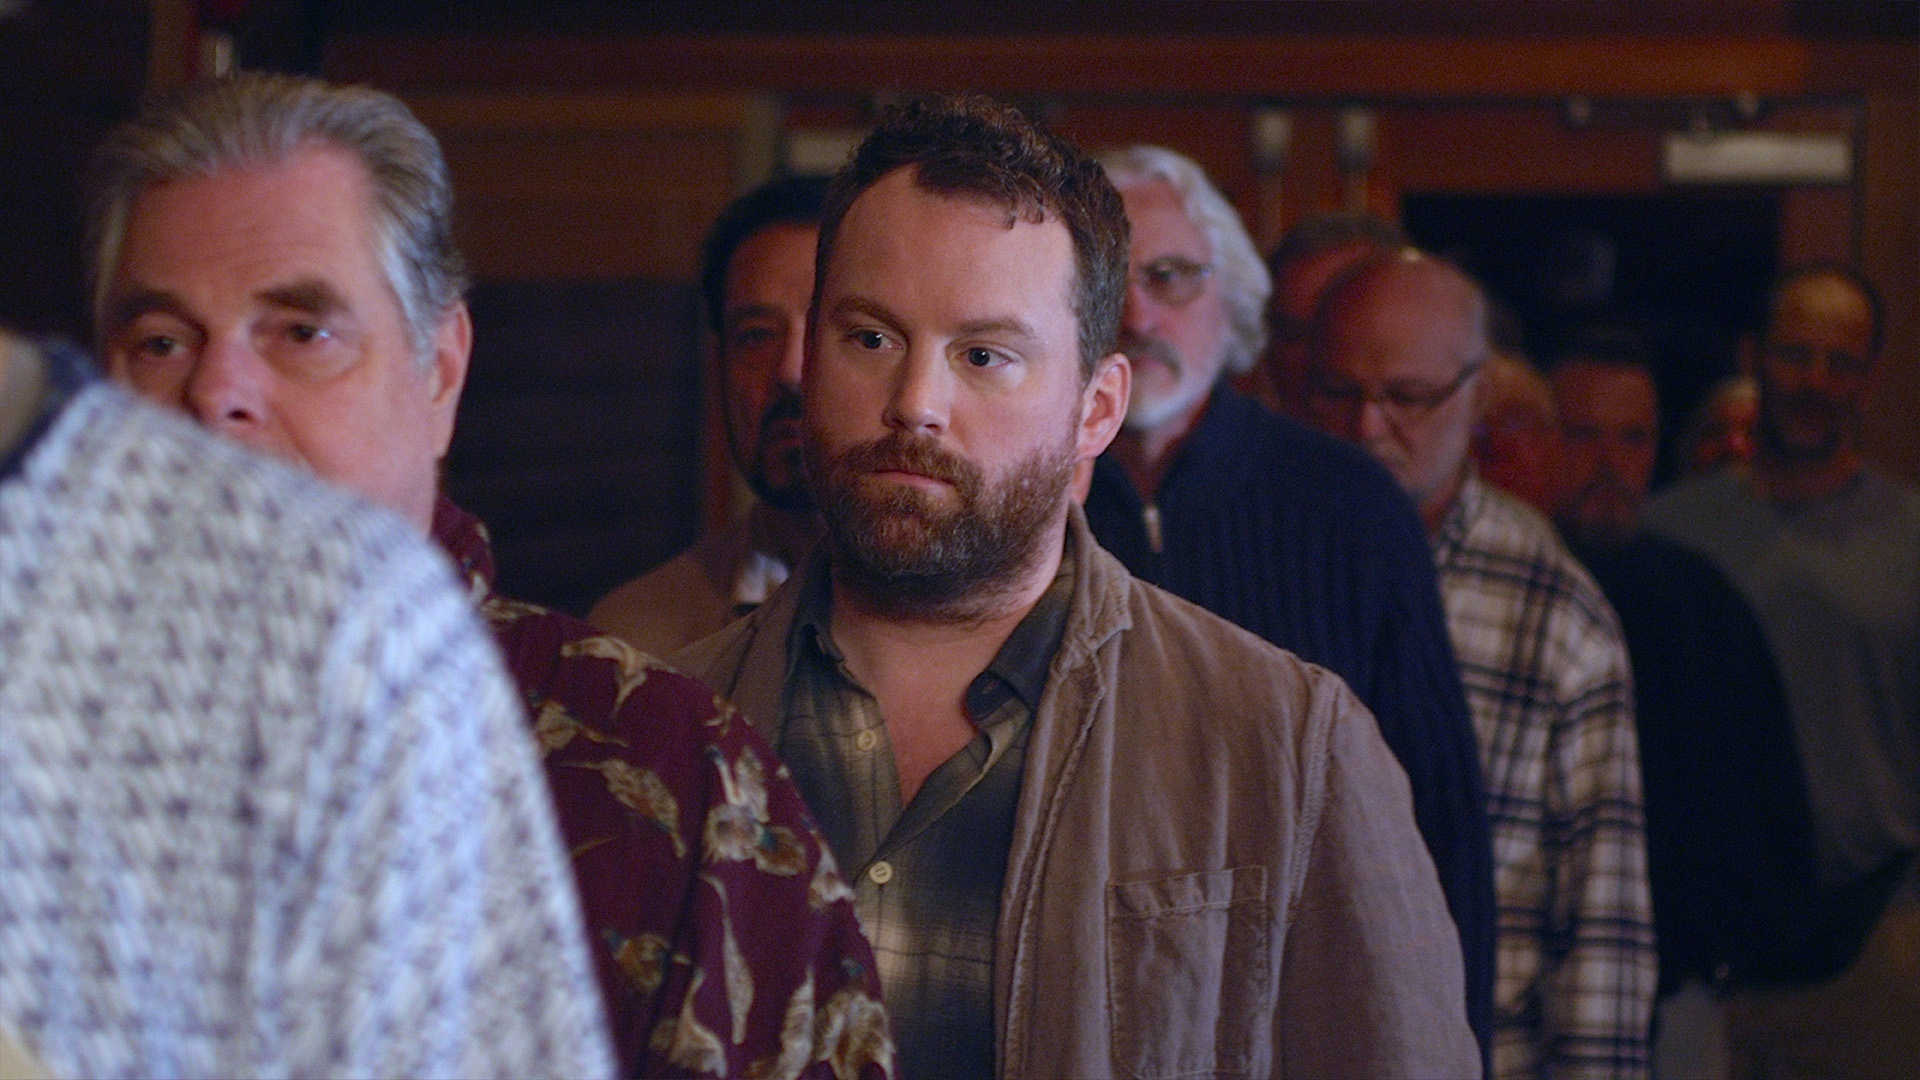 Patrick Gilmore as Andrew Myers in No Men Beyond This Point (2015)